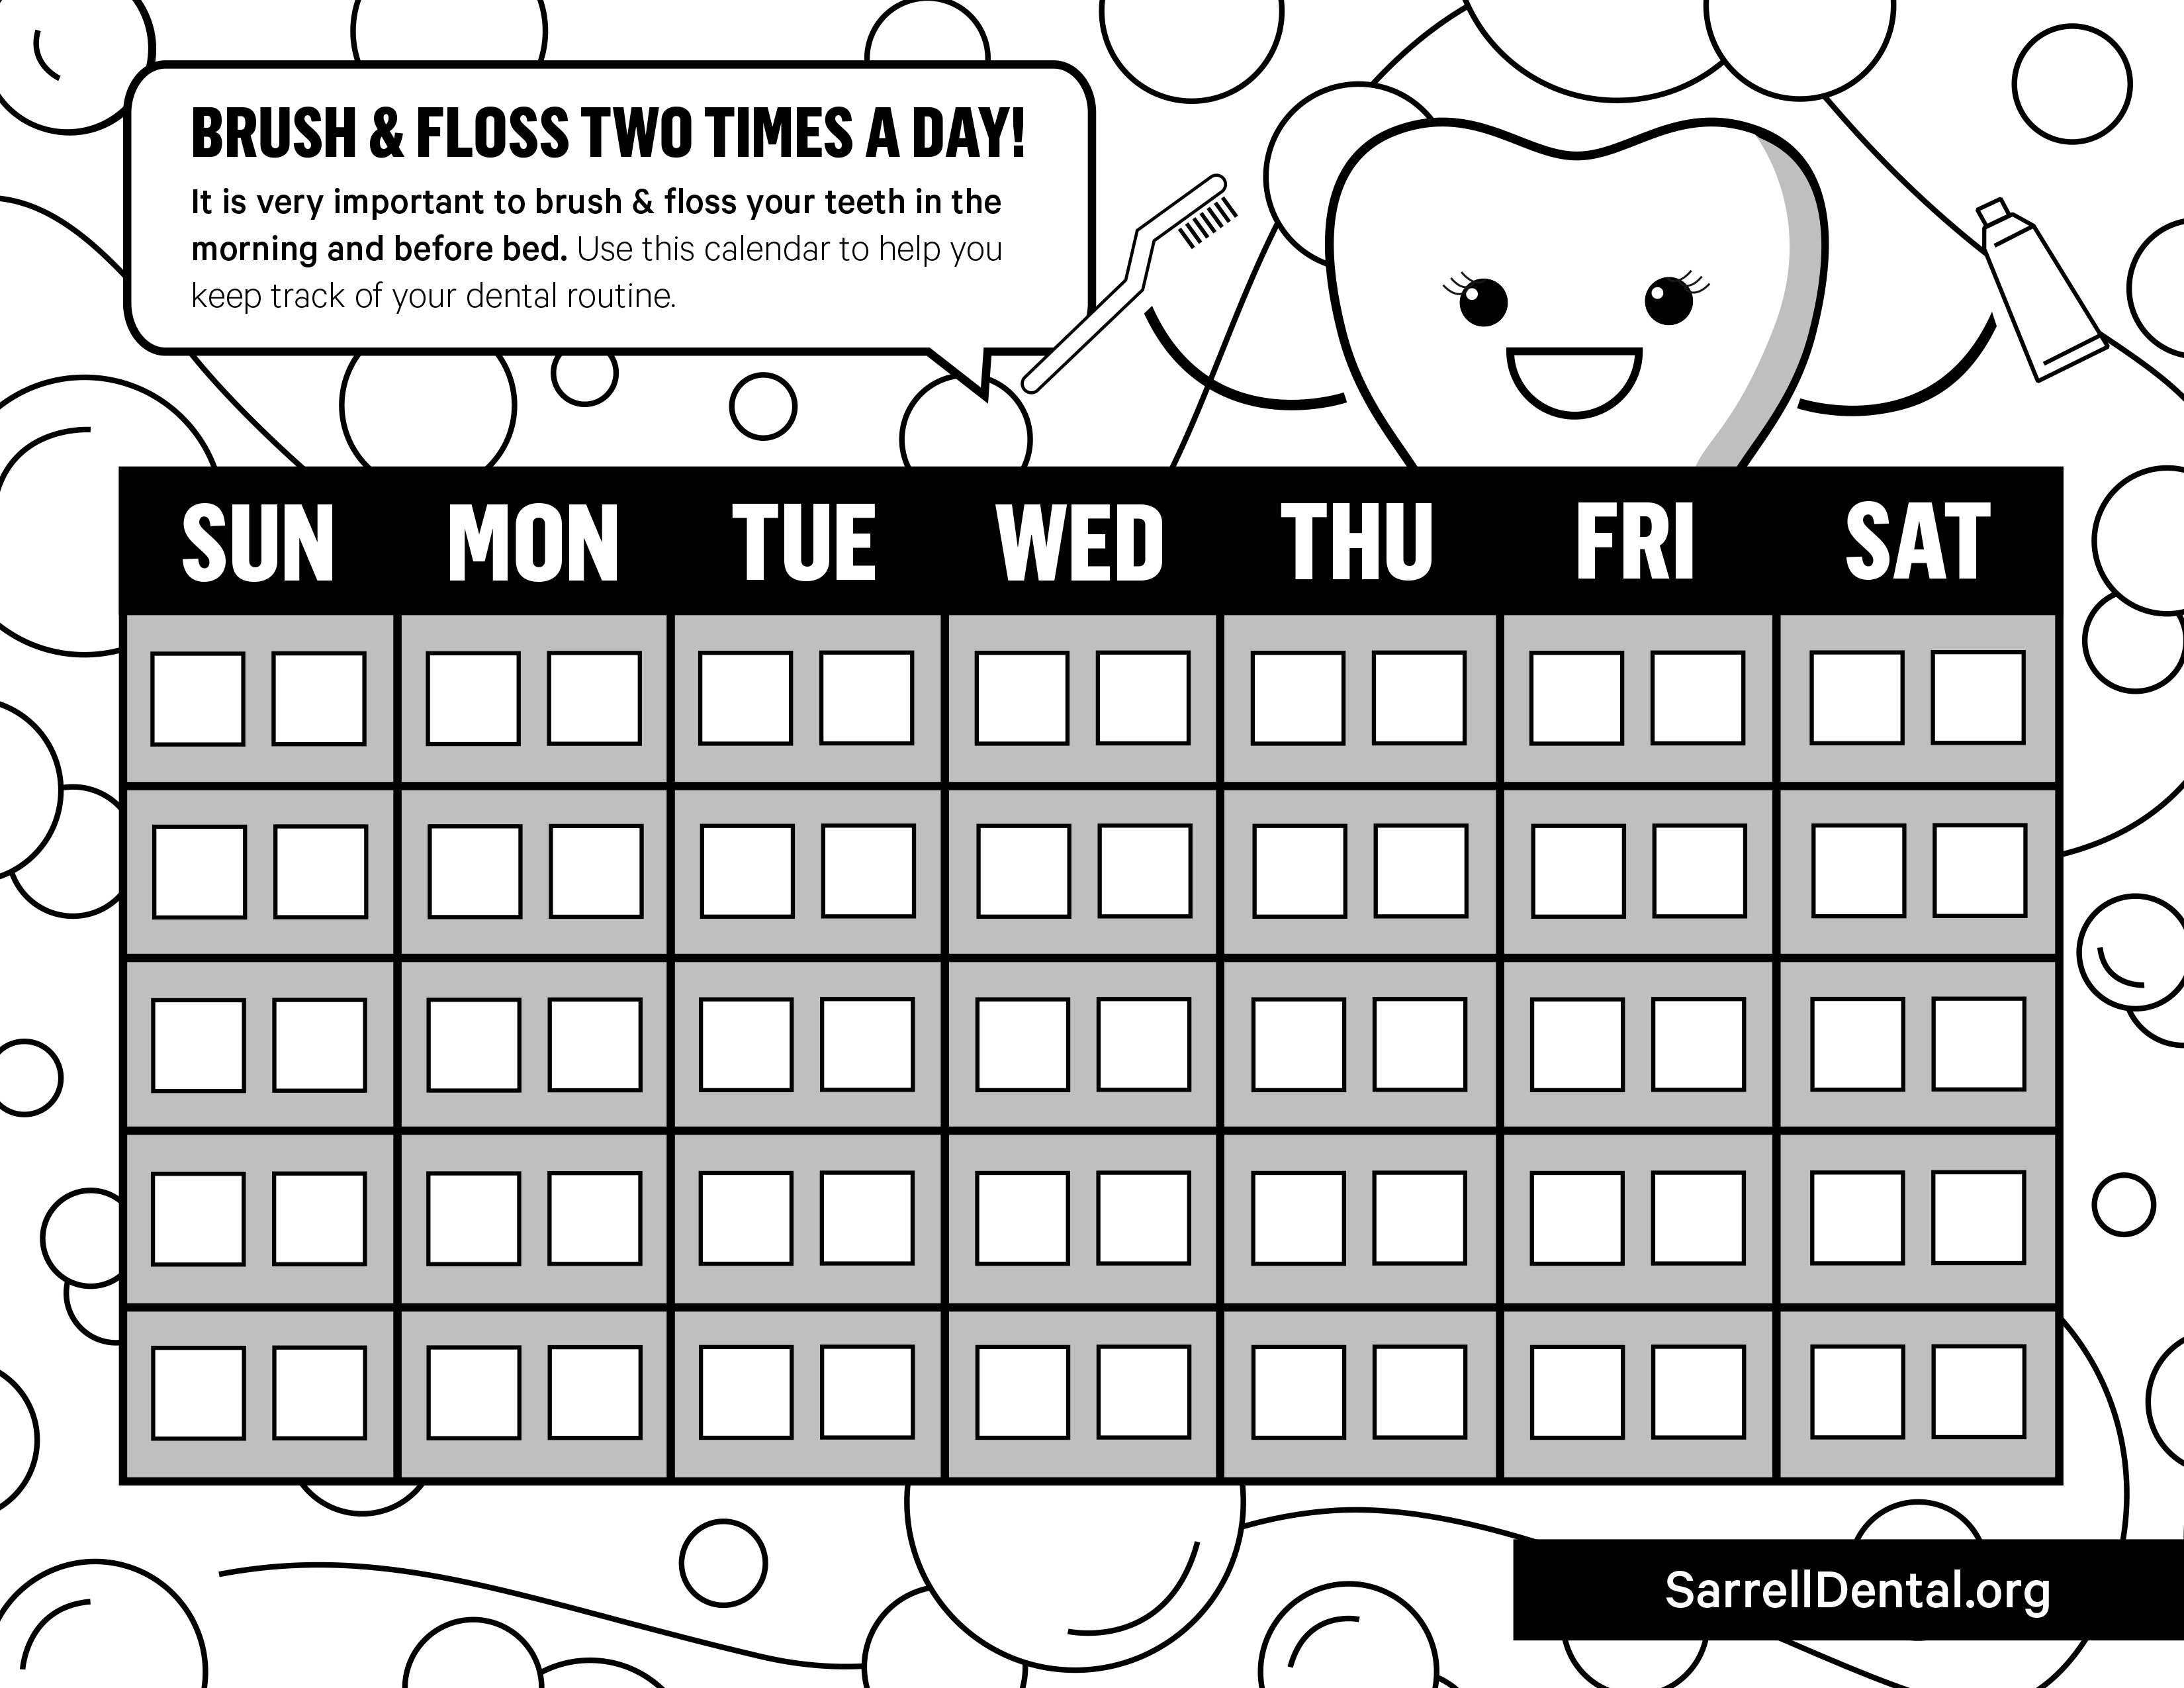 Kids' Smile Zone Brushing and Flossing Weekly Checklist